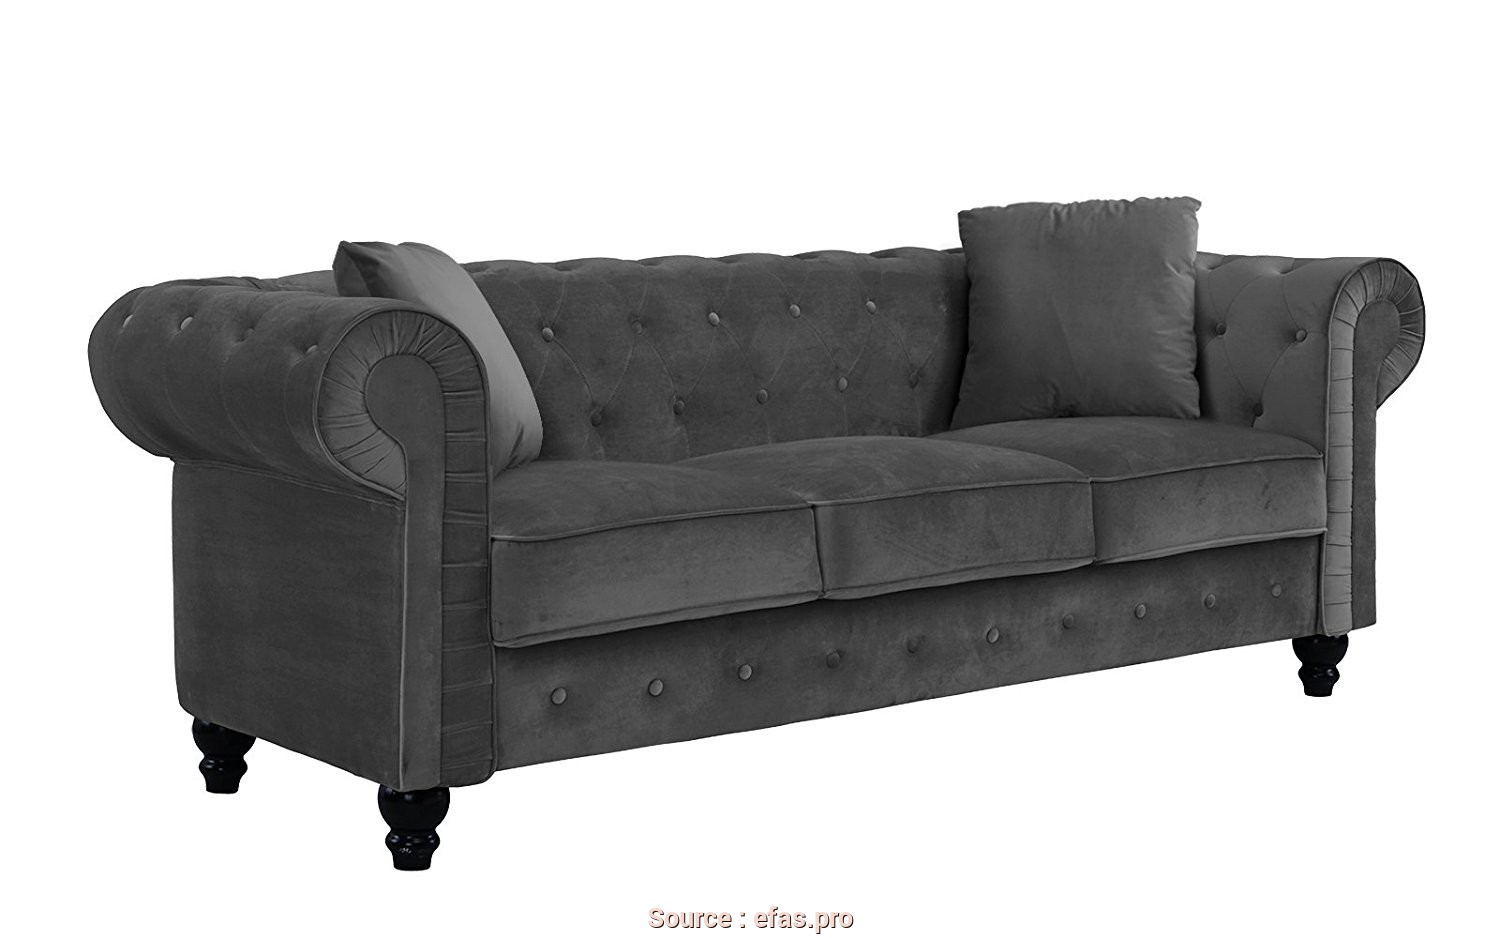 Divano Chesterfield Outlet, Deale Divano Roma Chesterfield Sofa : Divano Roma Furniture Classic Velvet Scroll, Tufted Button